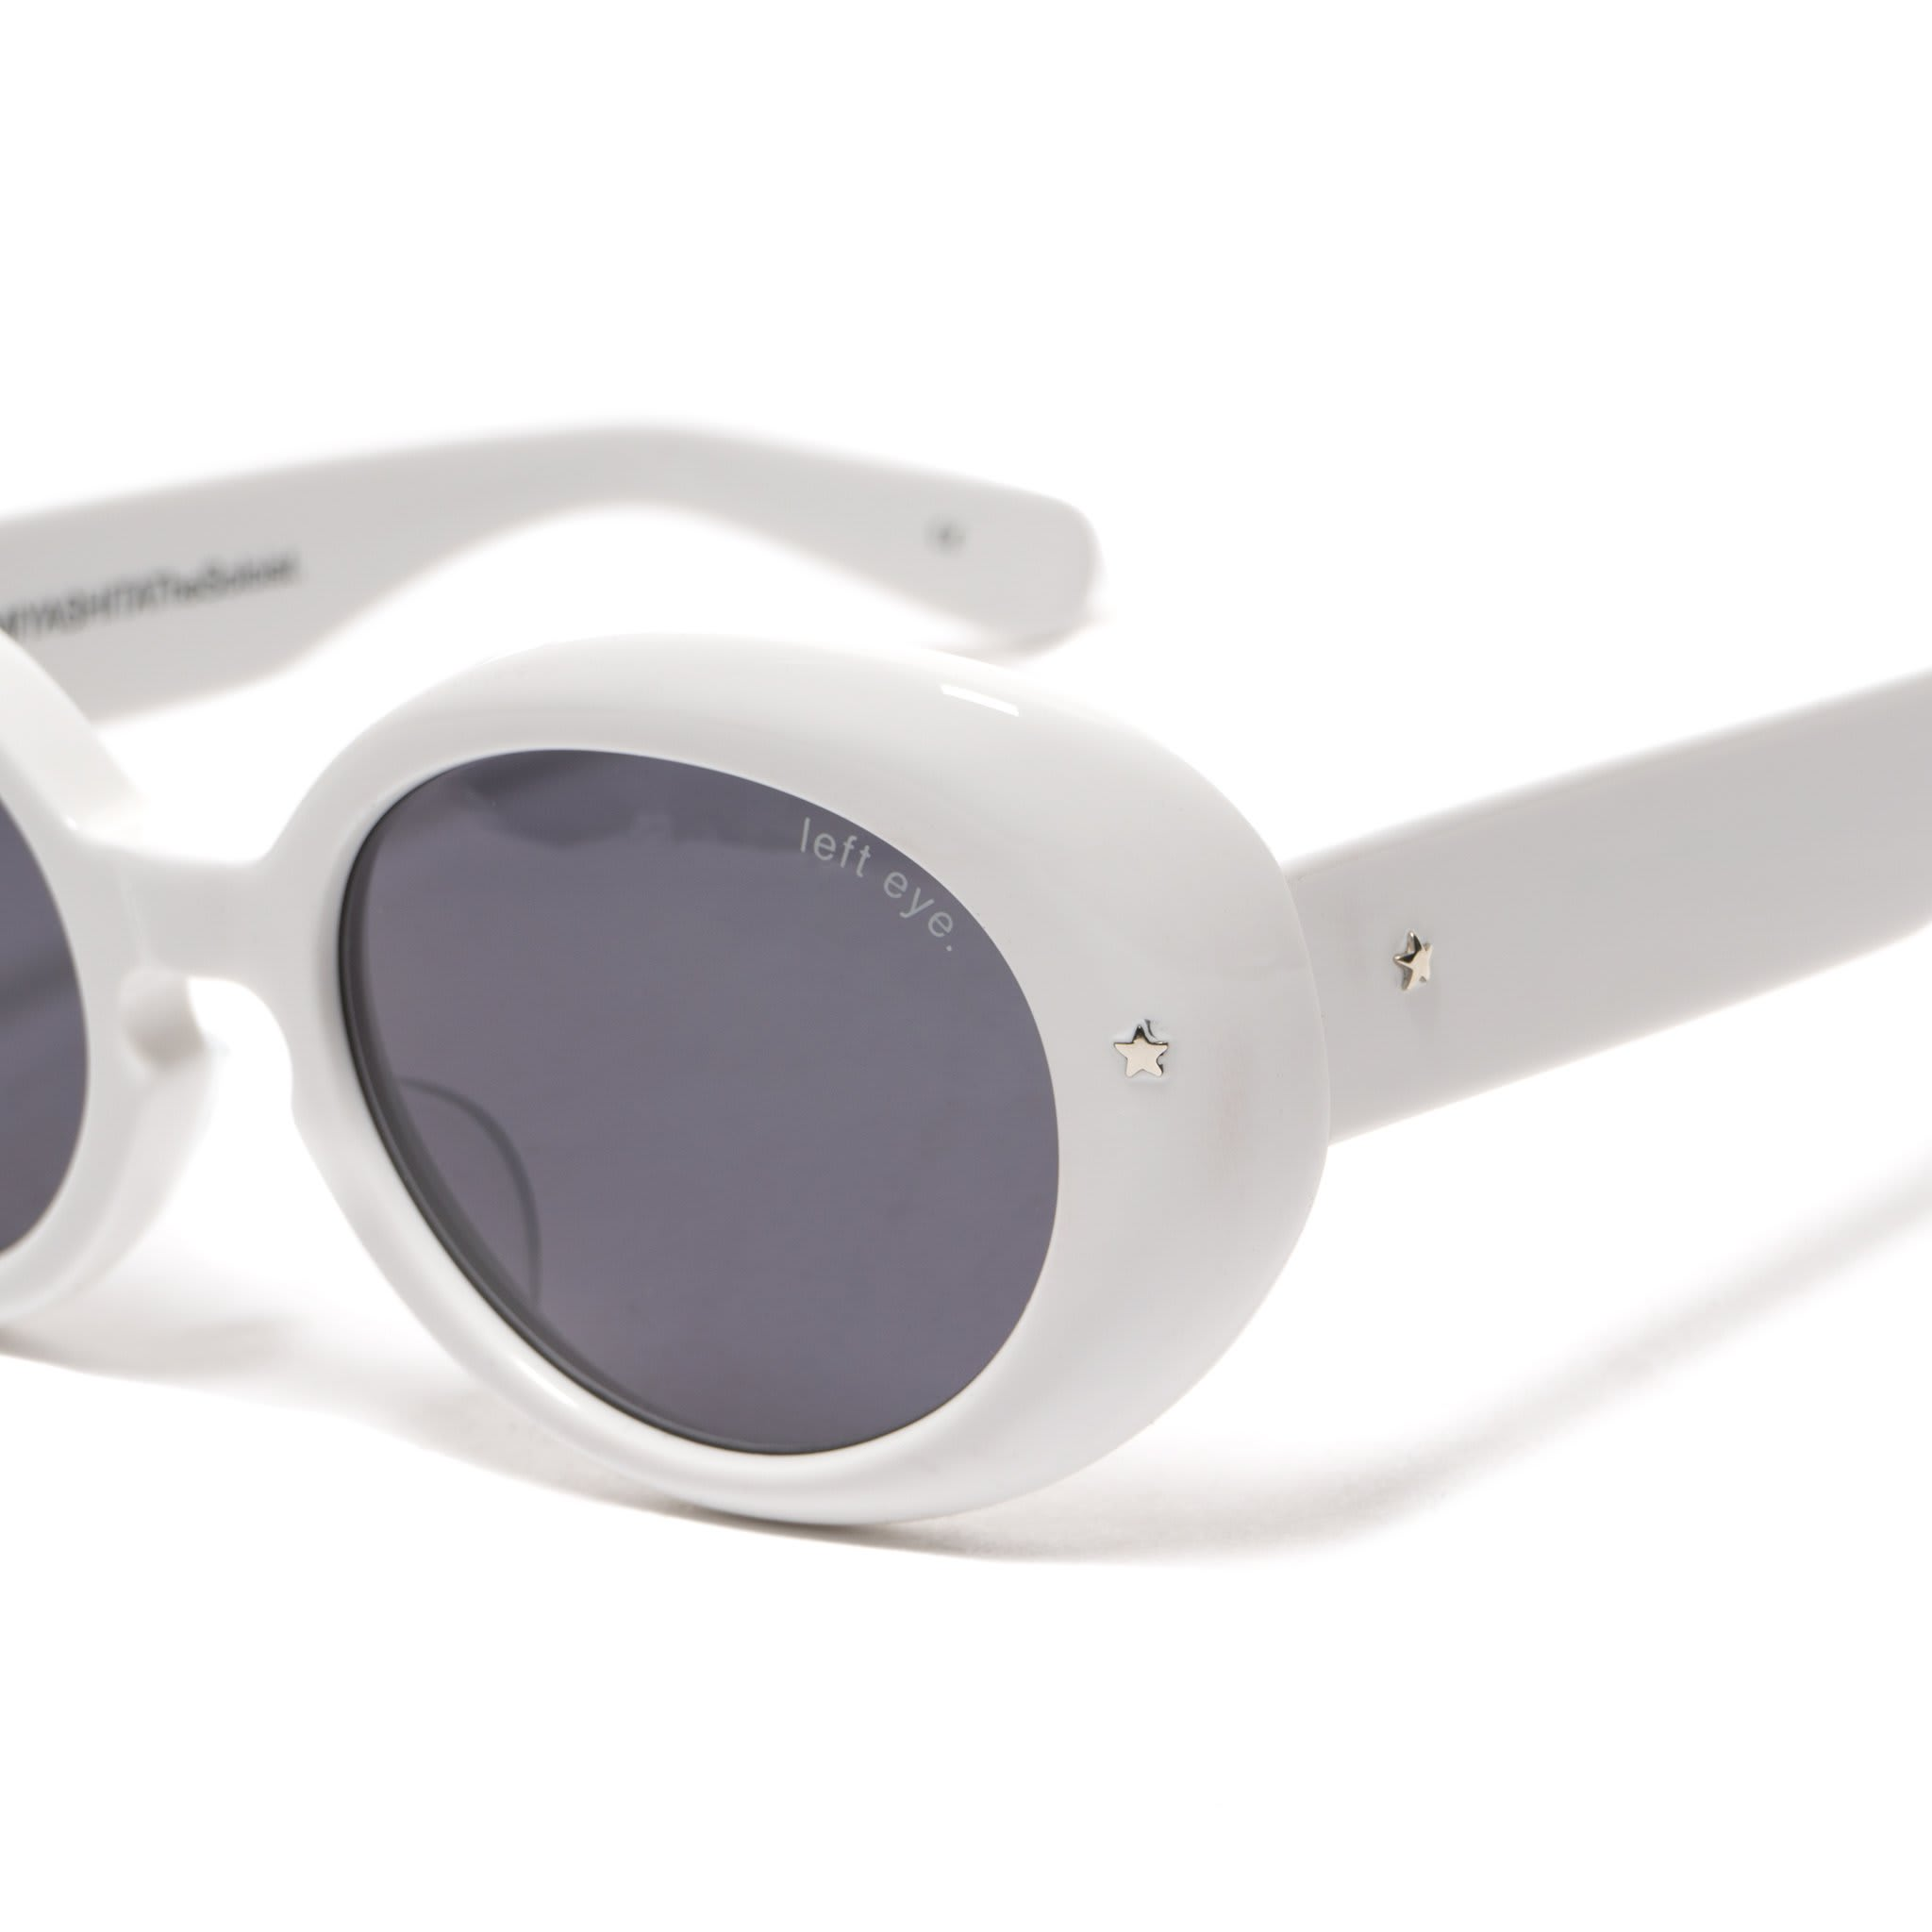 48dbf6d43db8 ... affinity for Kurt Cobain with these oval frames. Replicated from the  early 90 s silhouette